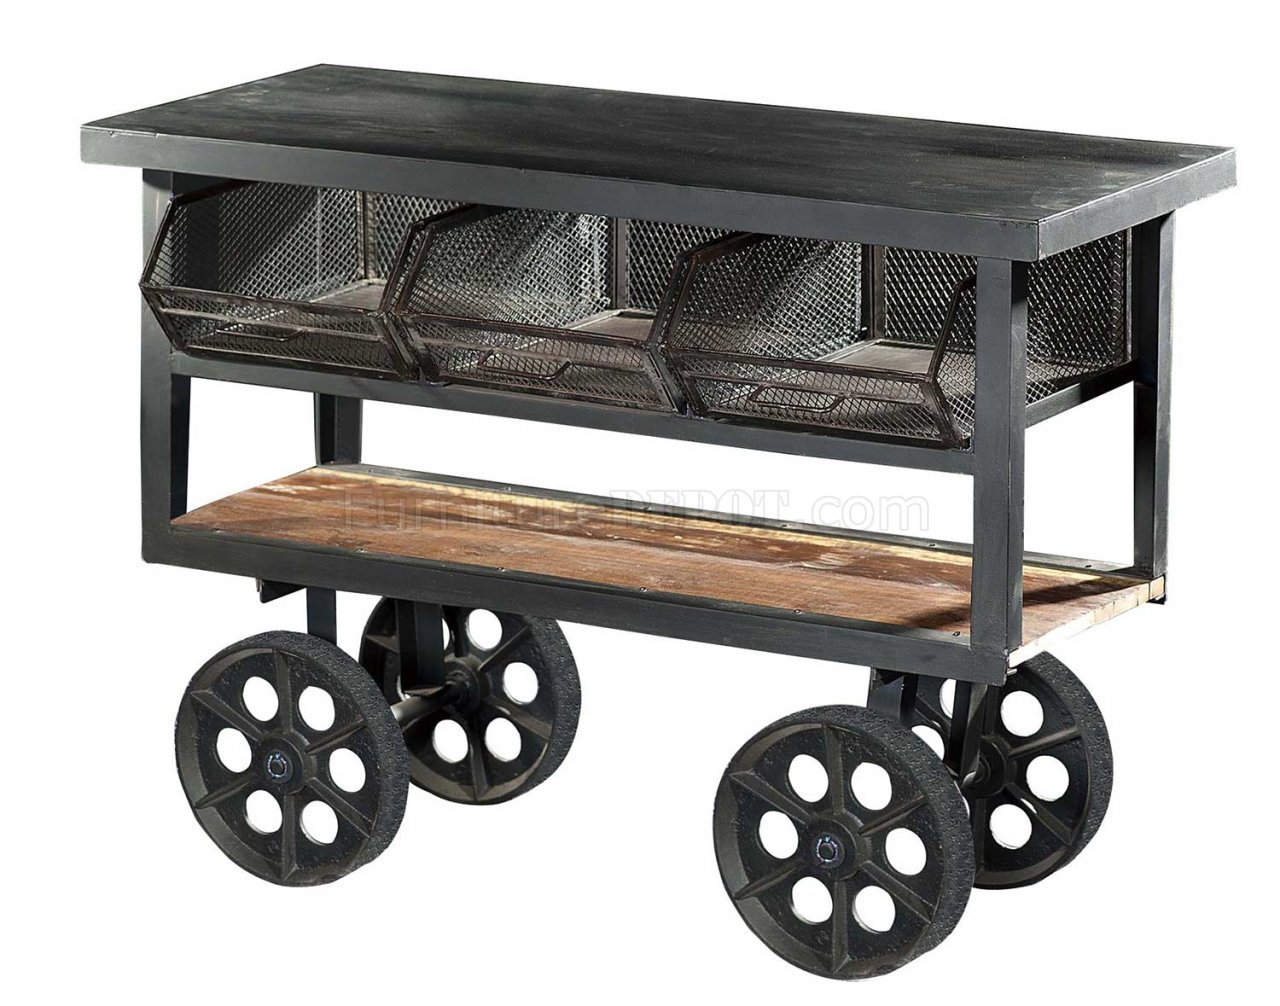 Amara 6411 Iron Kitchen Cart With Wheels By Homelegance